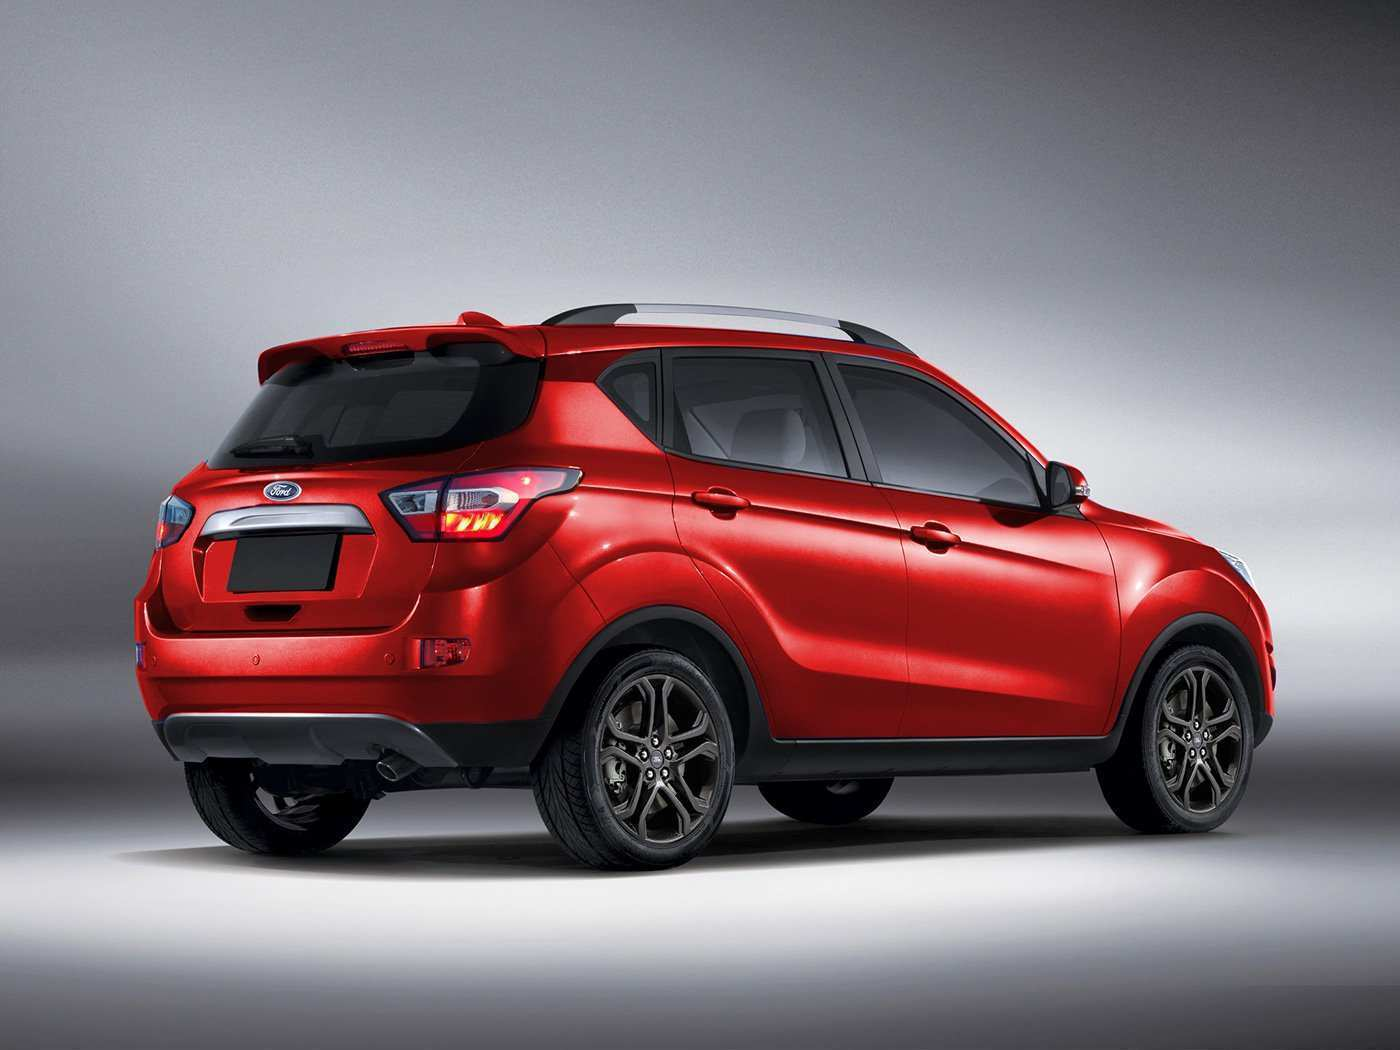 74 The 2020 Ford Ecosport Images for 2020 Ford Ecosport